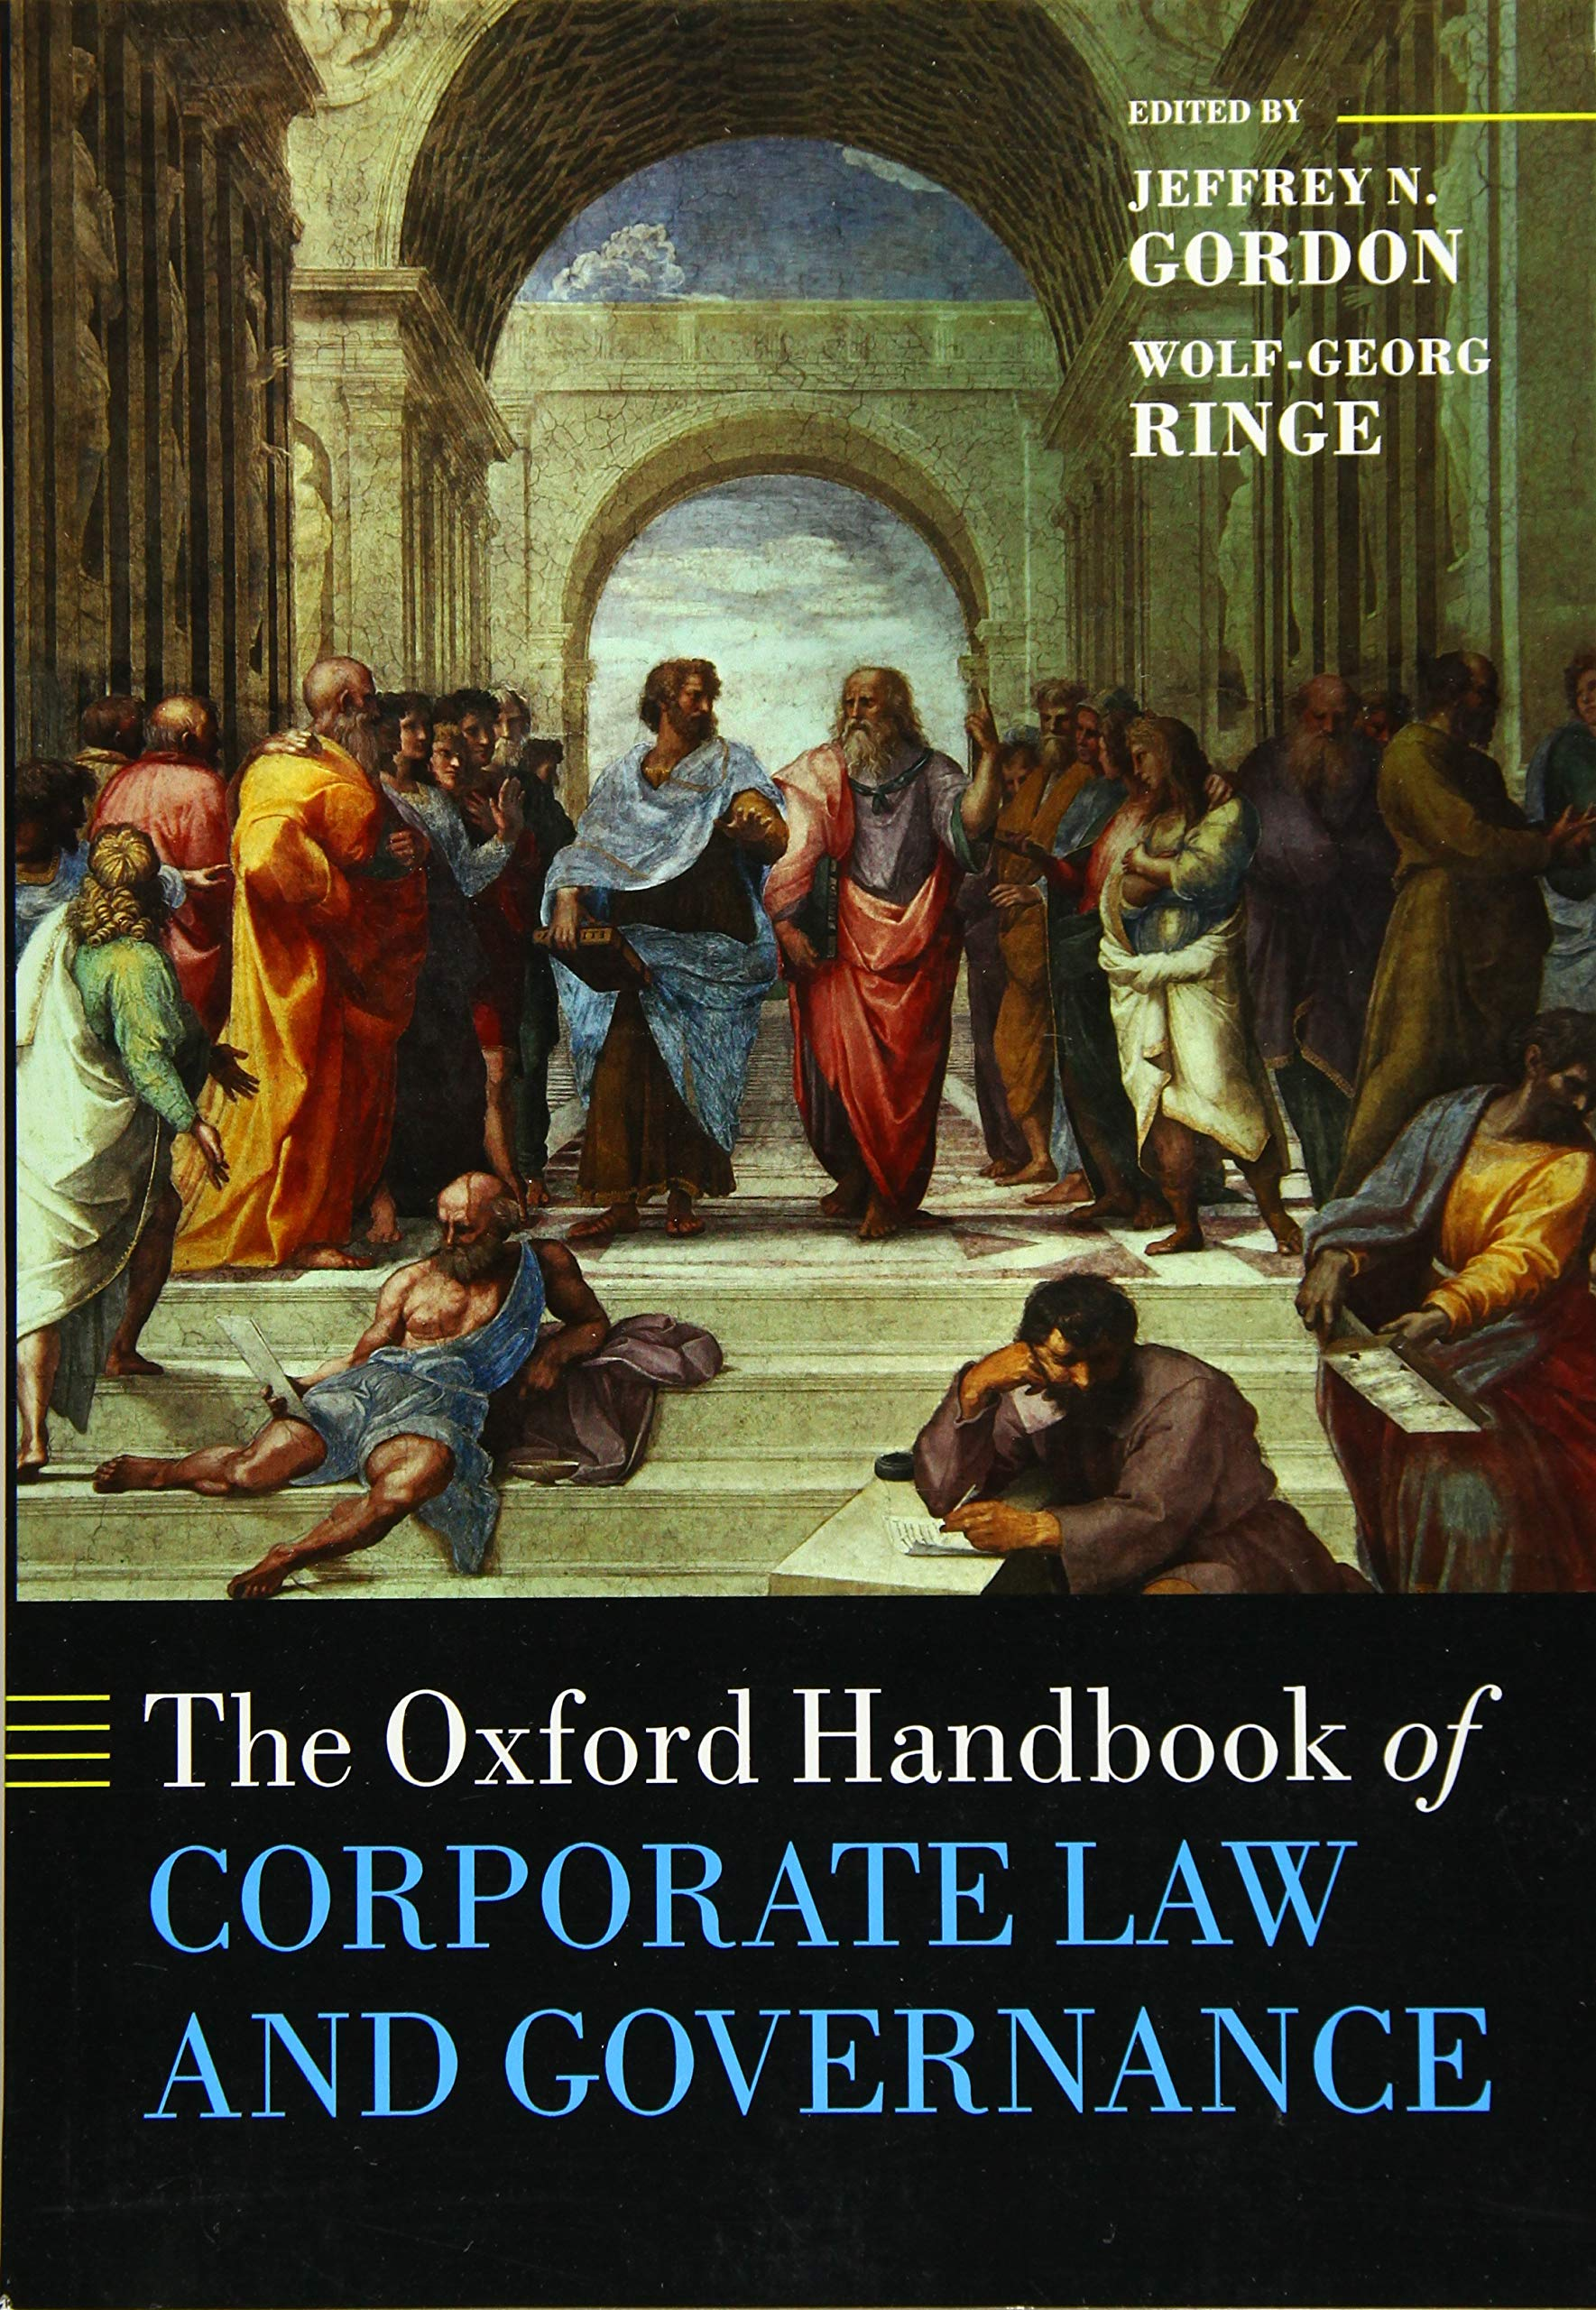 The Oxford Handbook of Corporate Law and Governance